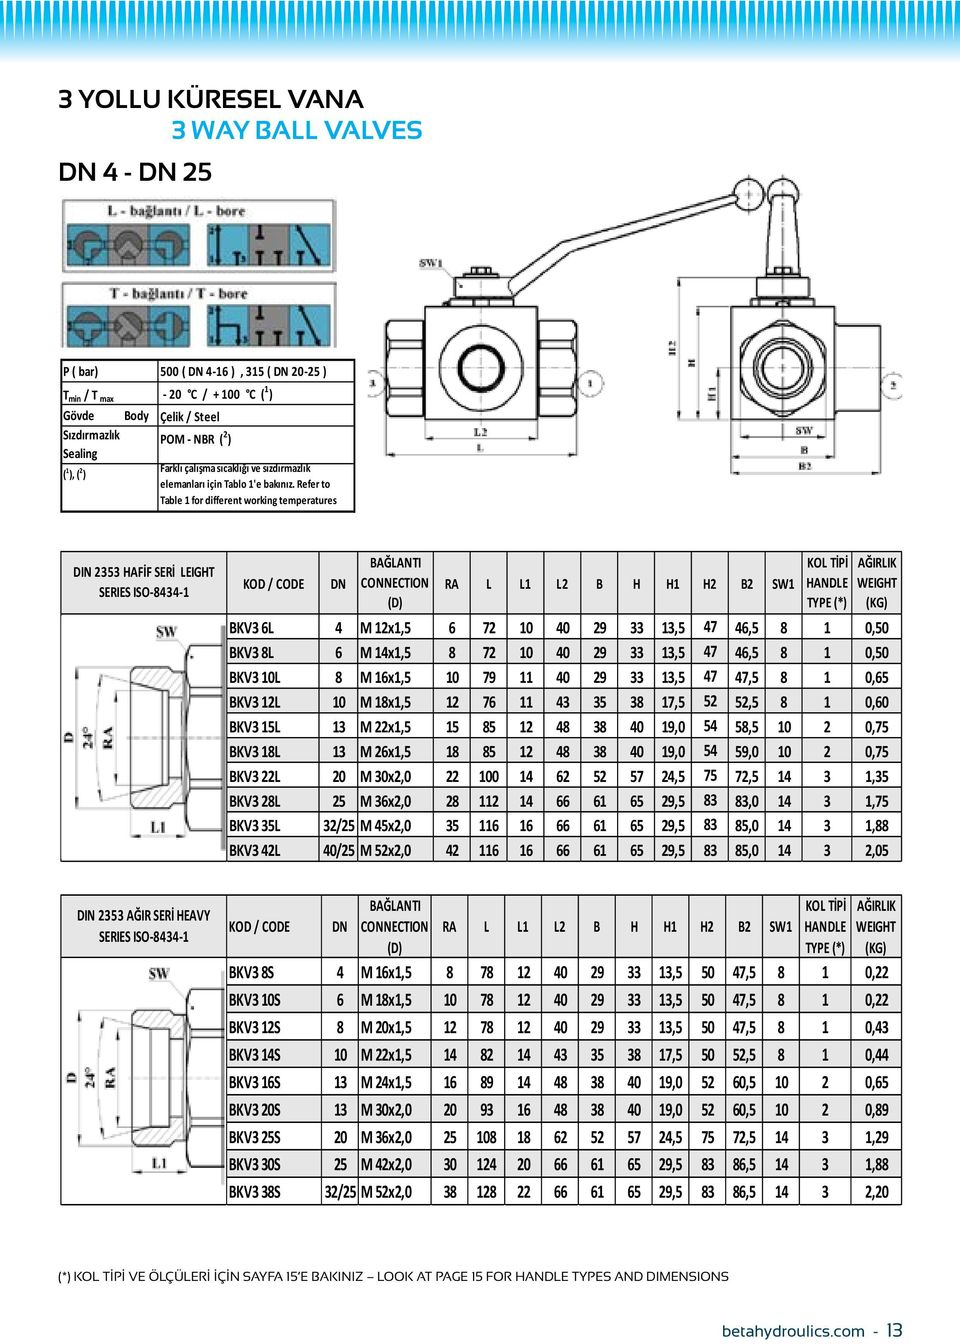 Refer to Table 1 for different working temperatures DIN 2353 HAFİF SERİ LEIGHT SERIES ISO-8434-1 DN CONNECTION (D) RA L L1 L2 B H H1 H2 B2 SW1 BKV3 6L 4 M 12x1,5 6 72 10 40 29 33 13,5 47 46,5 8 1